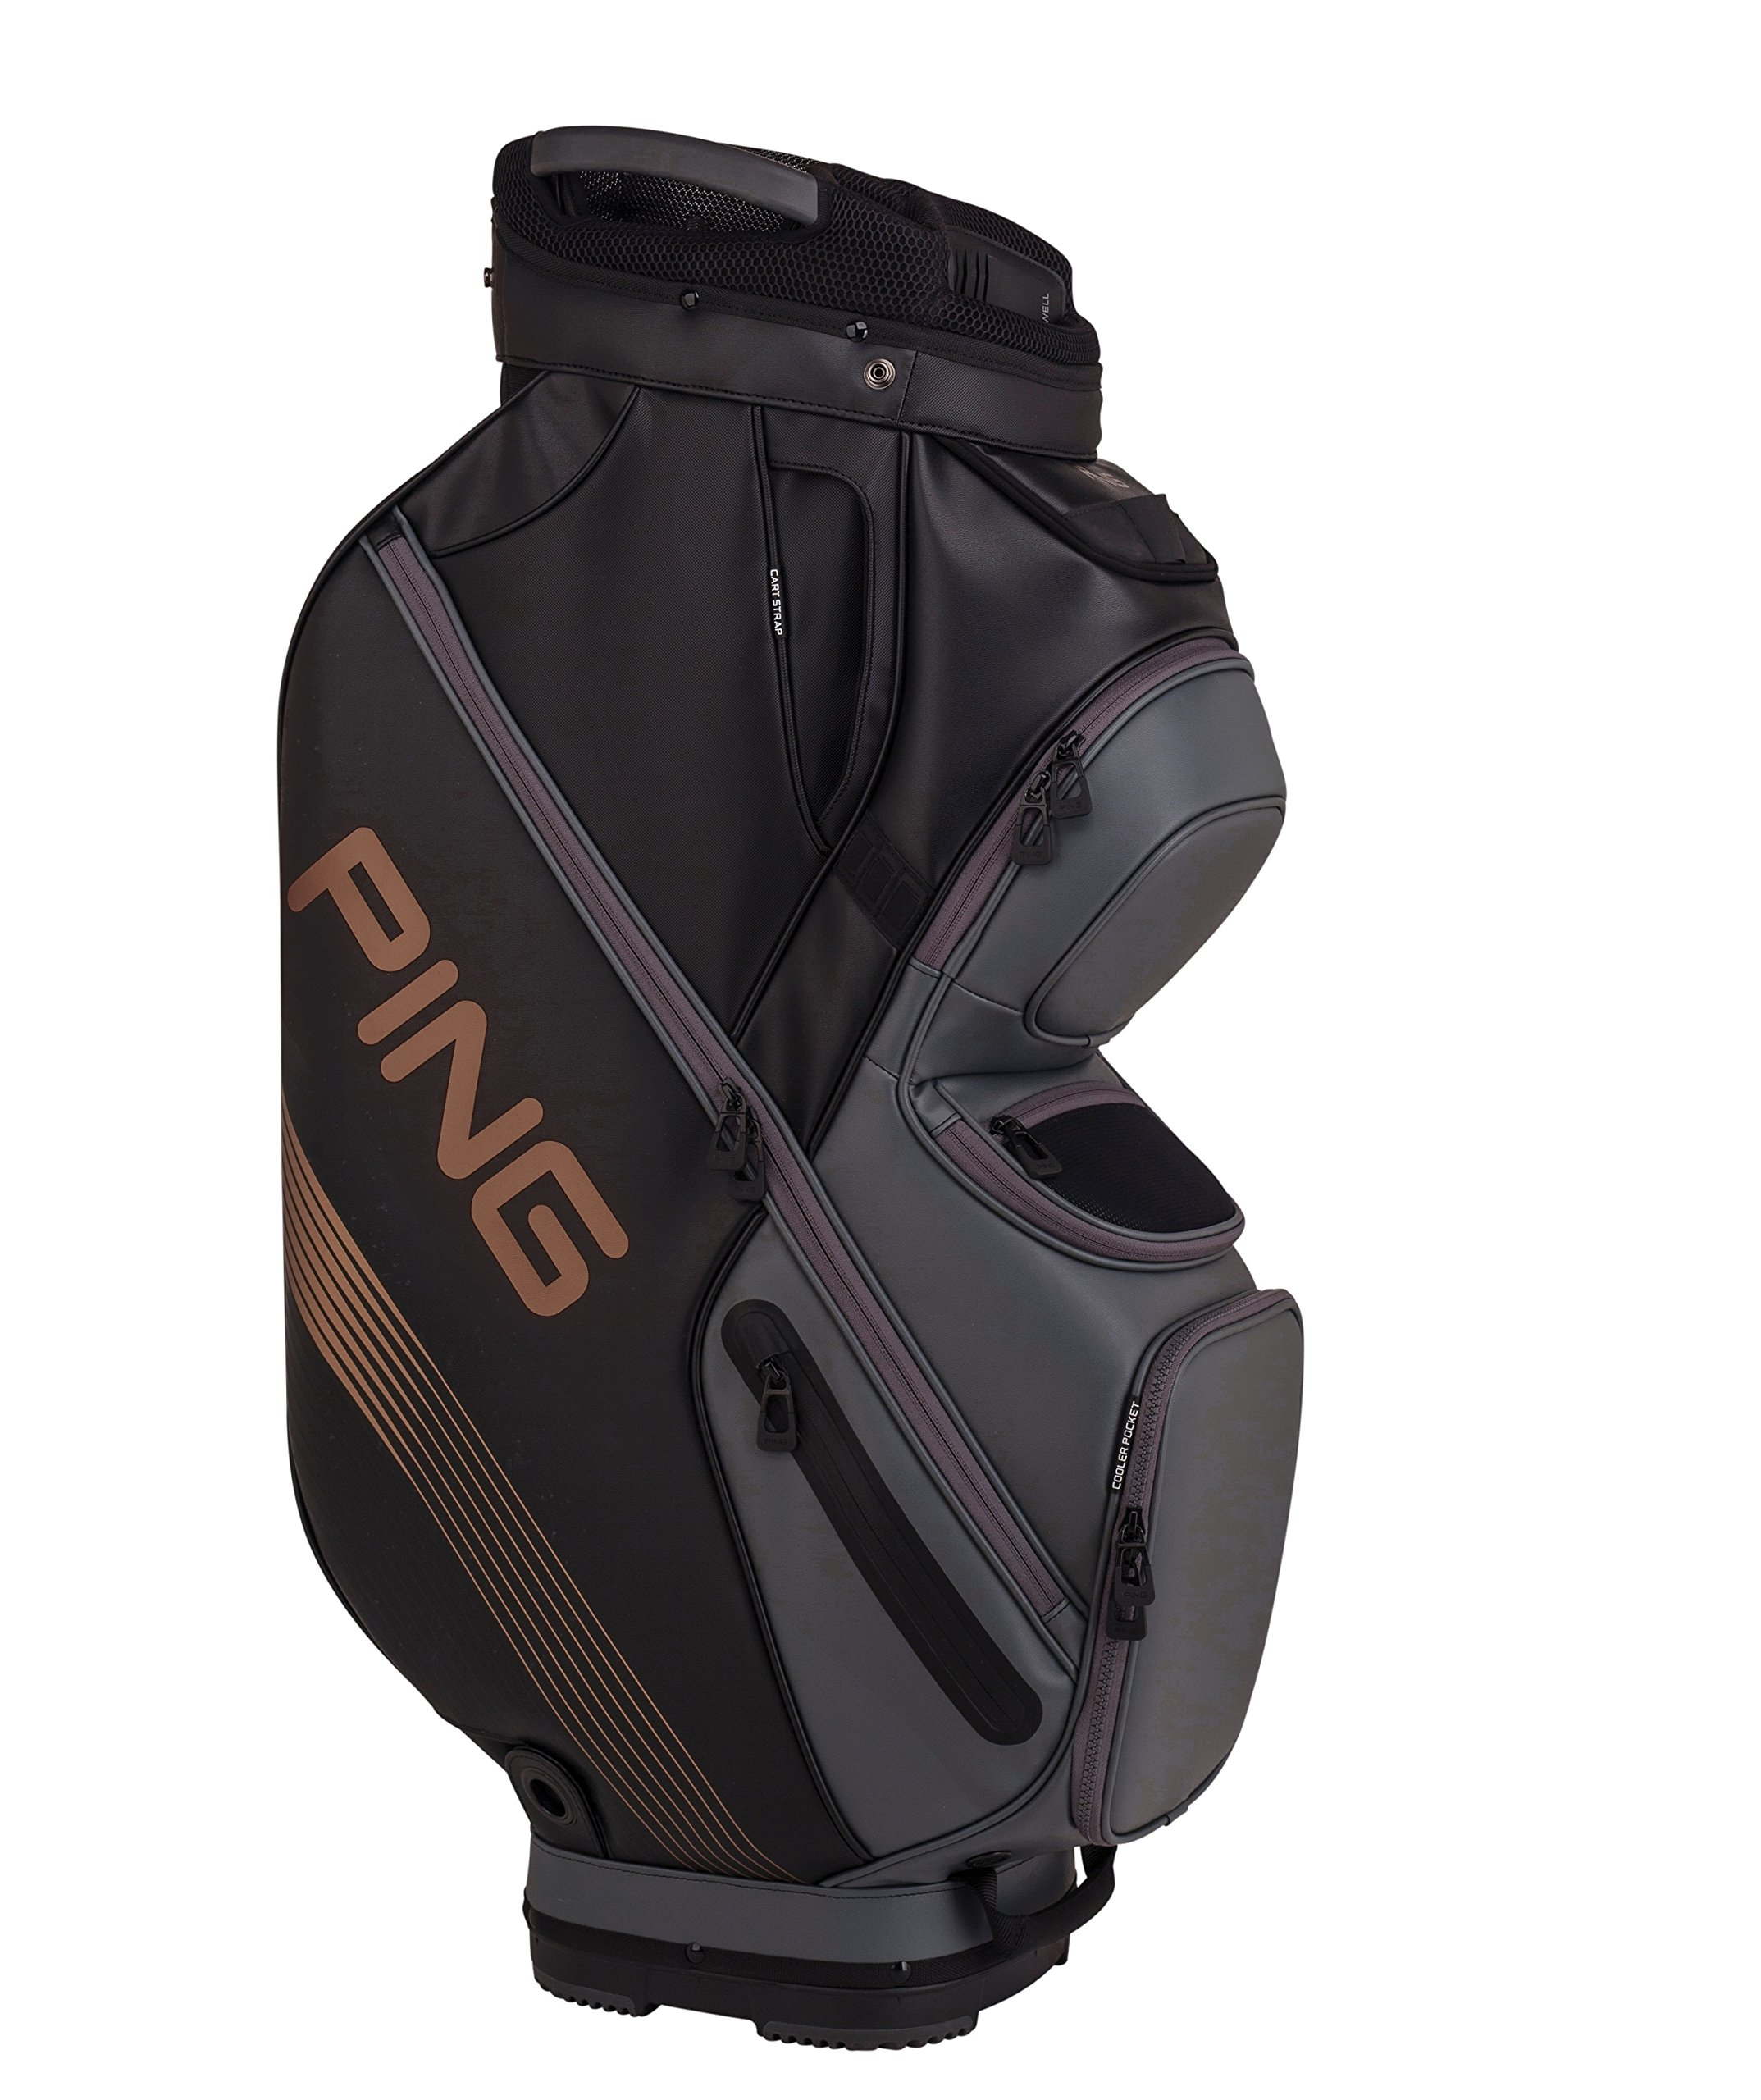 PING 2018 PING DLX 164 CART GOLF BAG 04 BLACK/GRAPHITE/CANYON COPPER